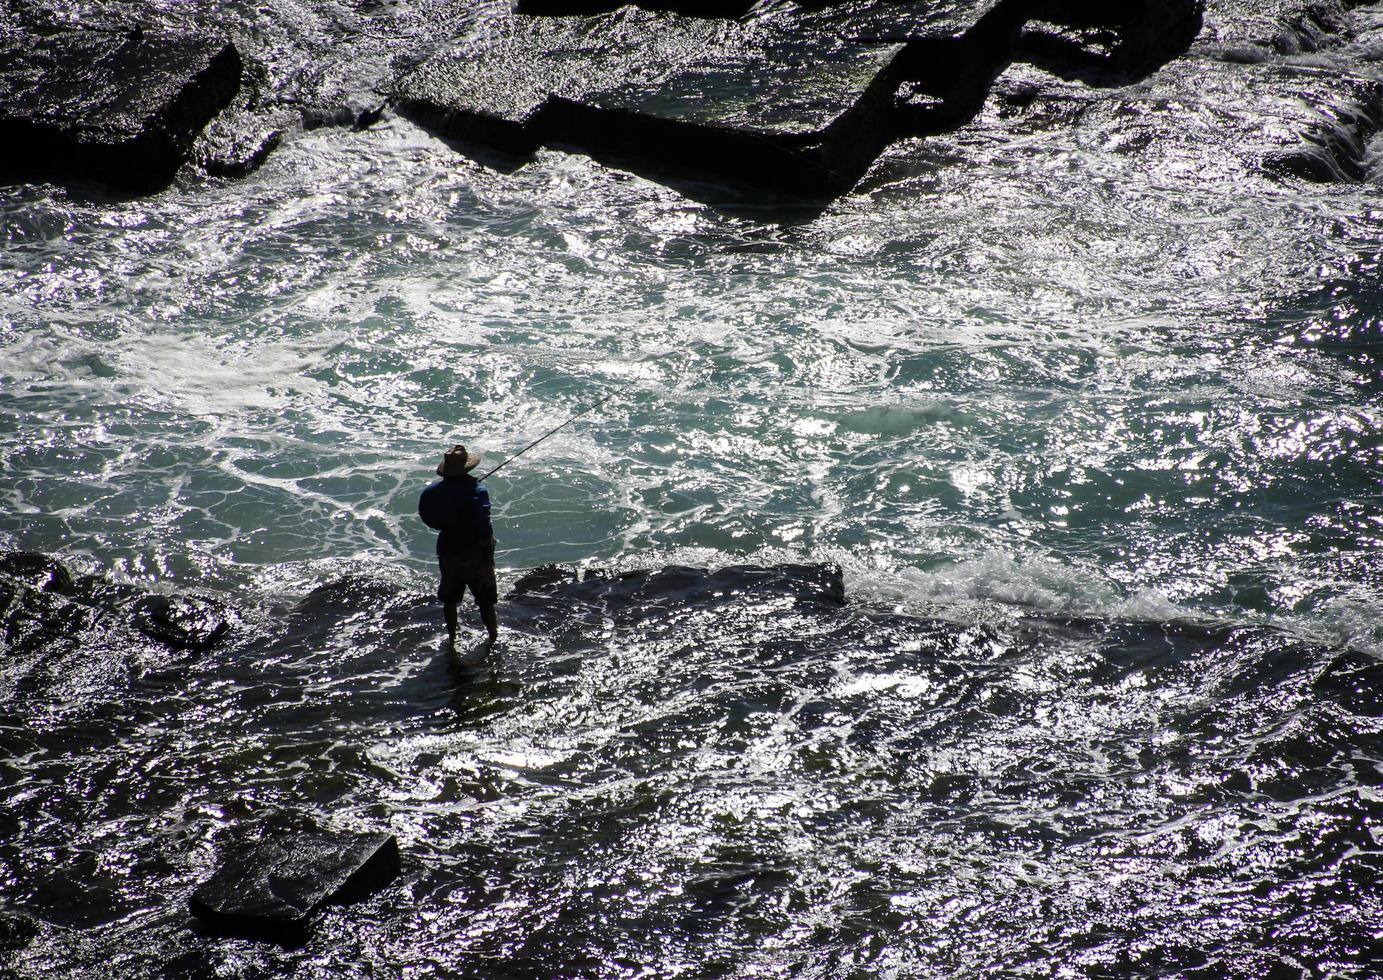 Sydney, Australia, 2020 - Man fishing while wading in the water photo